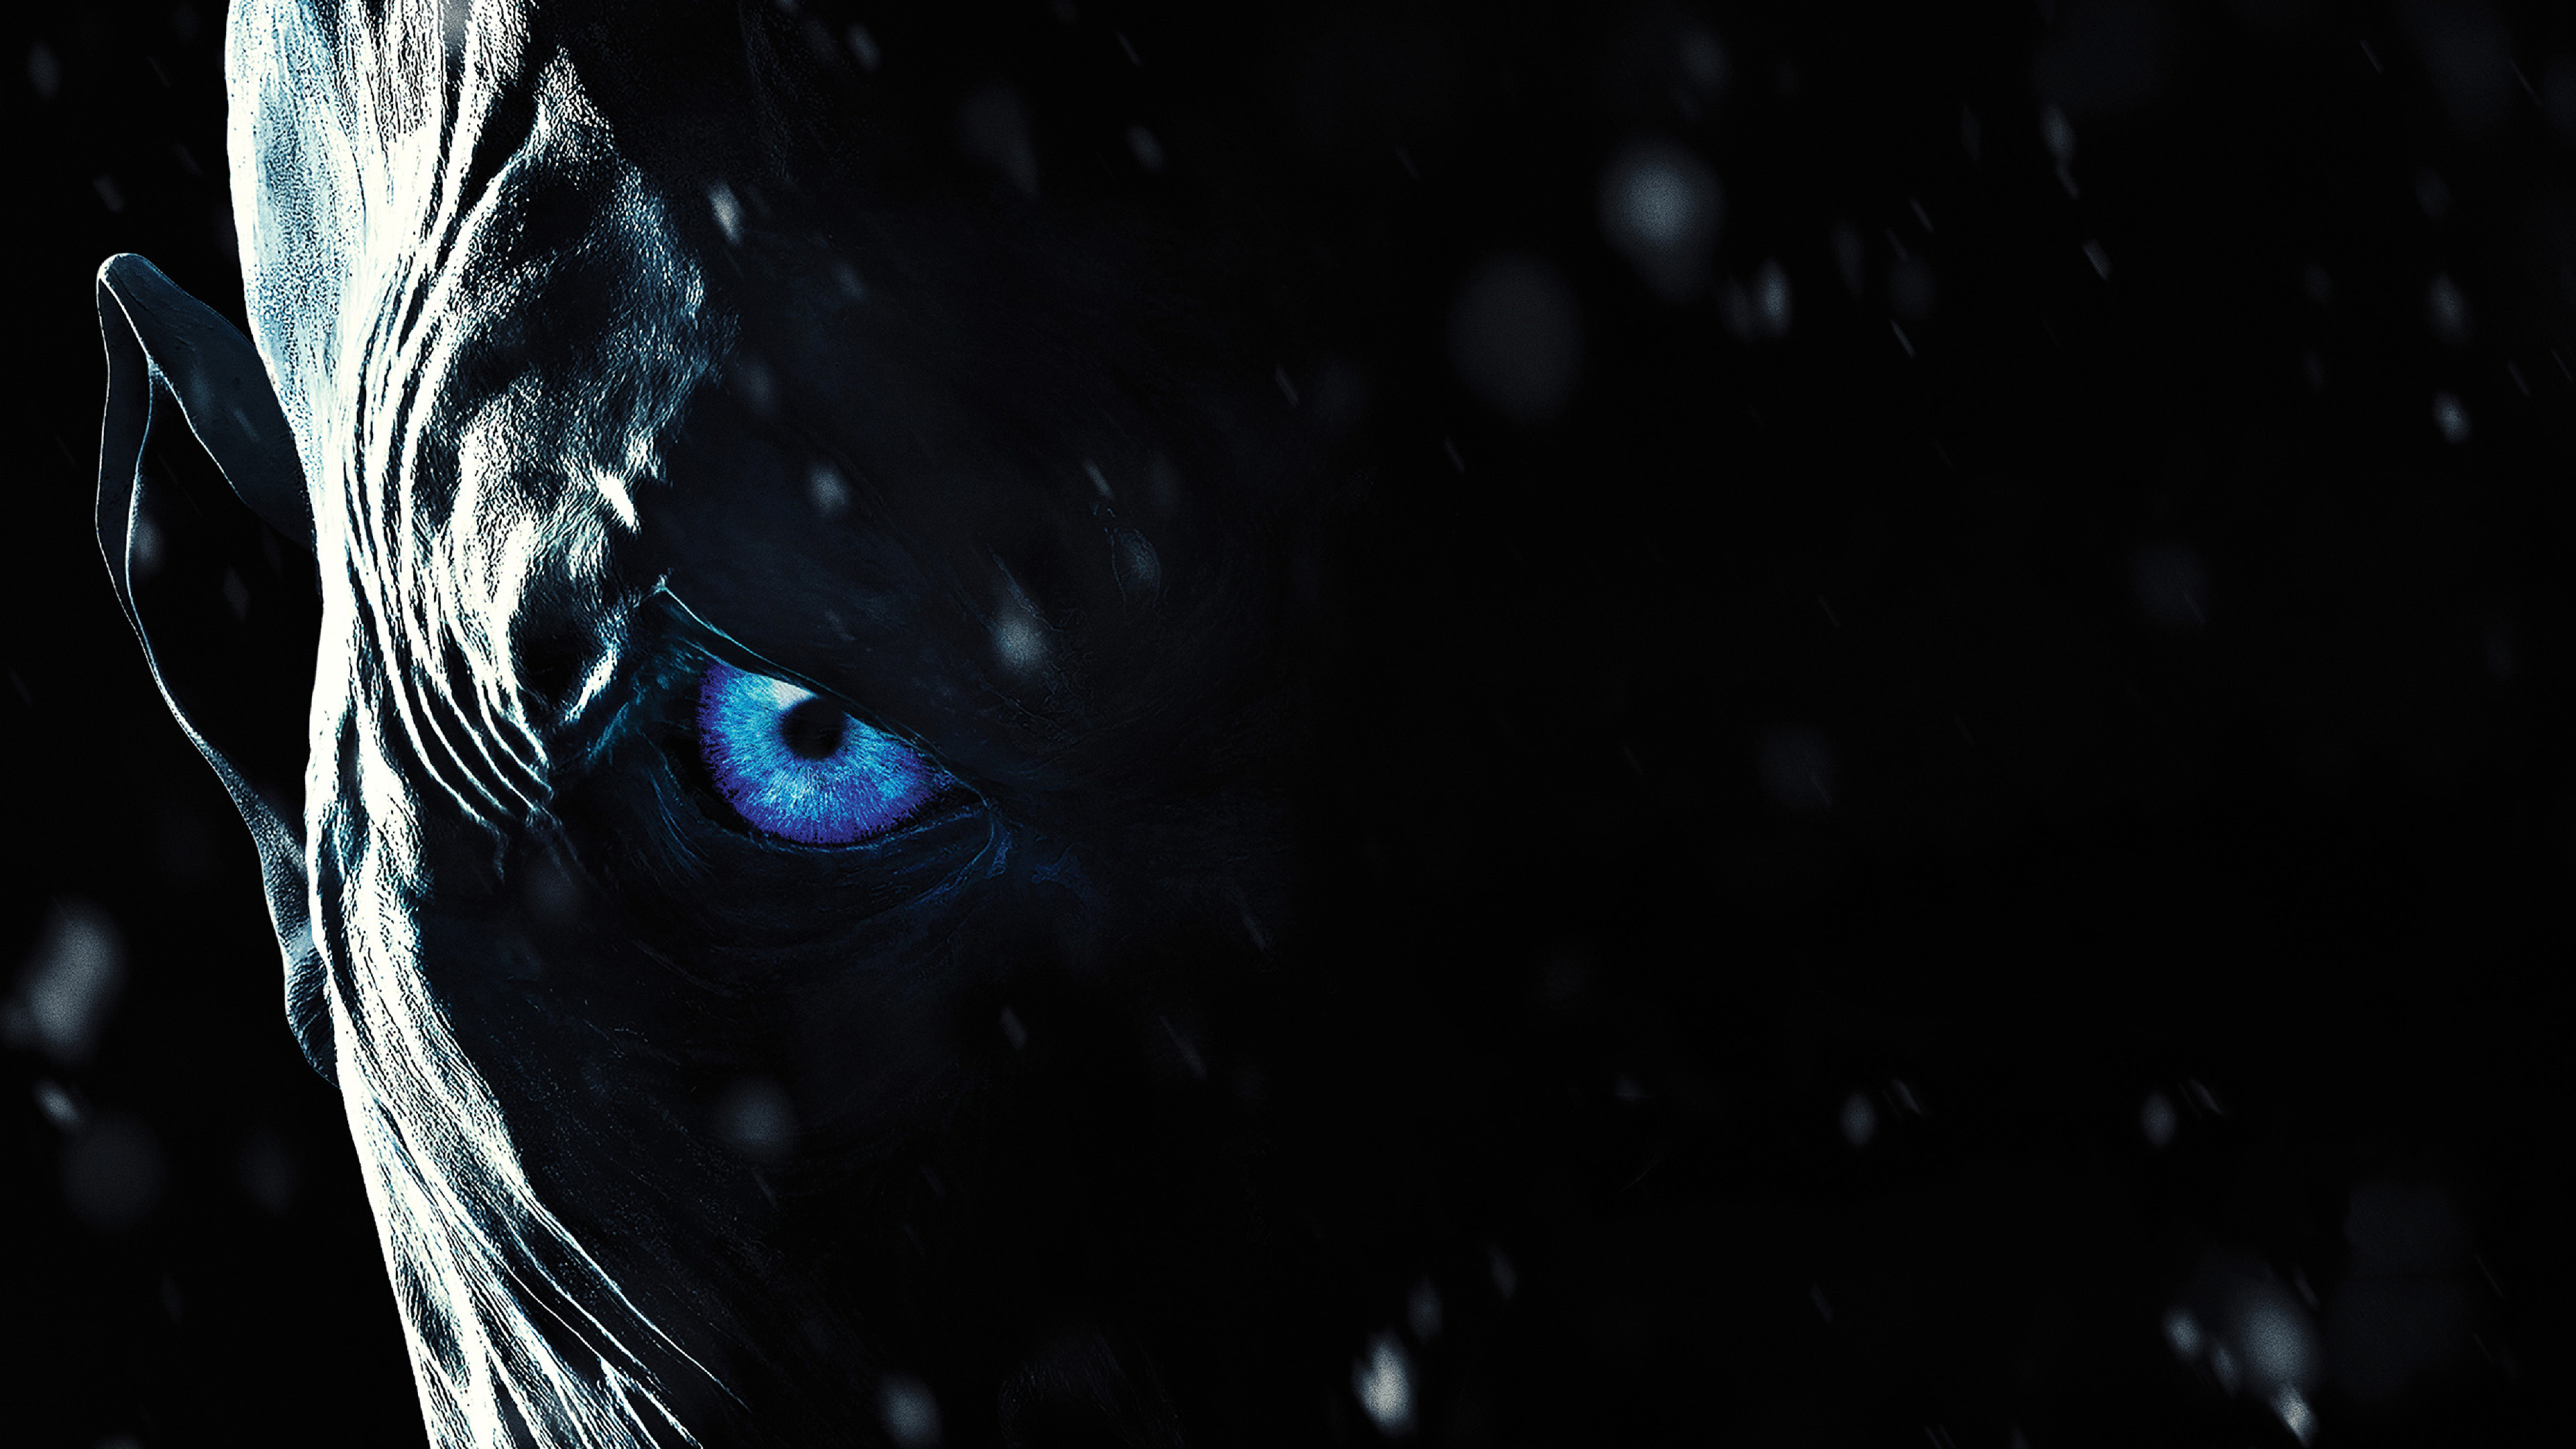 Game Of Thrones Wallpaper 4k Ultra Hd Id 3002